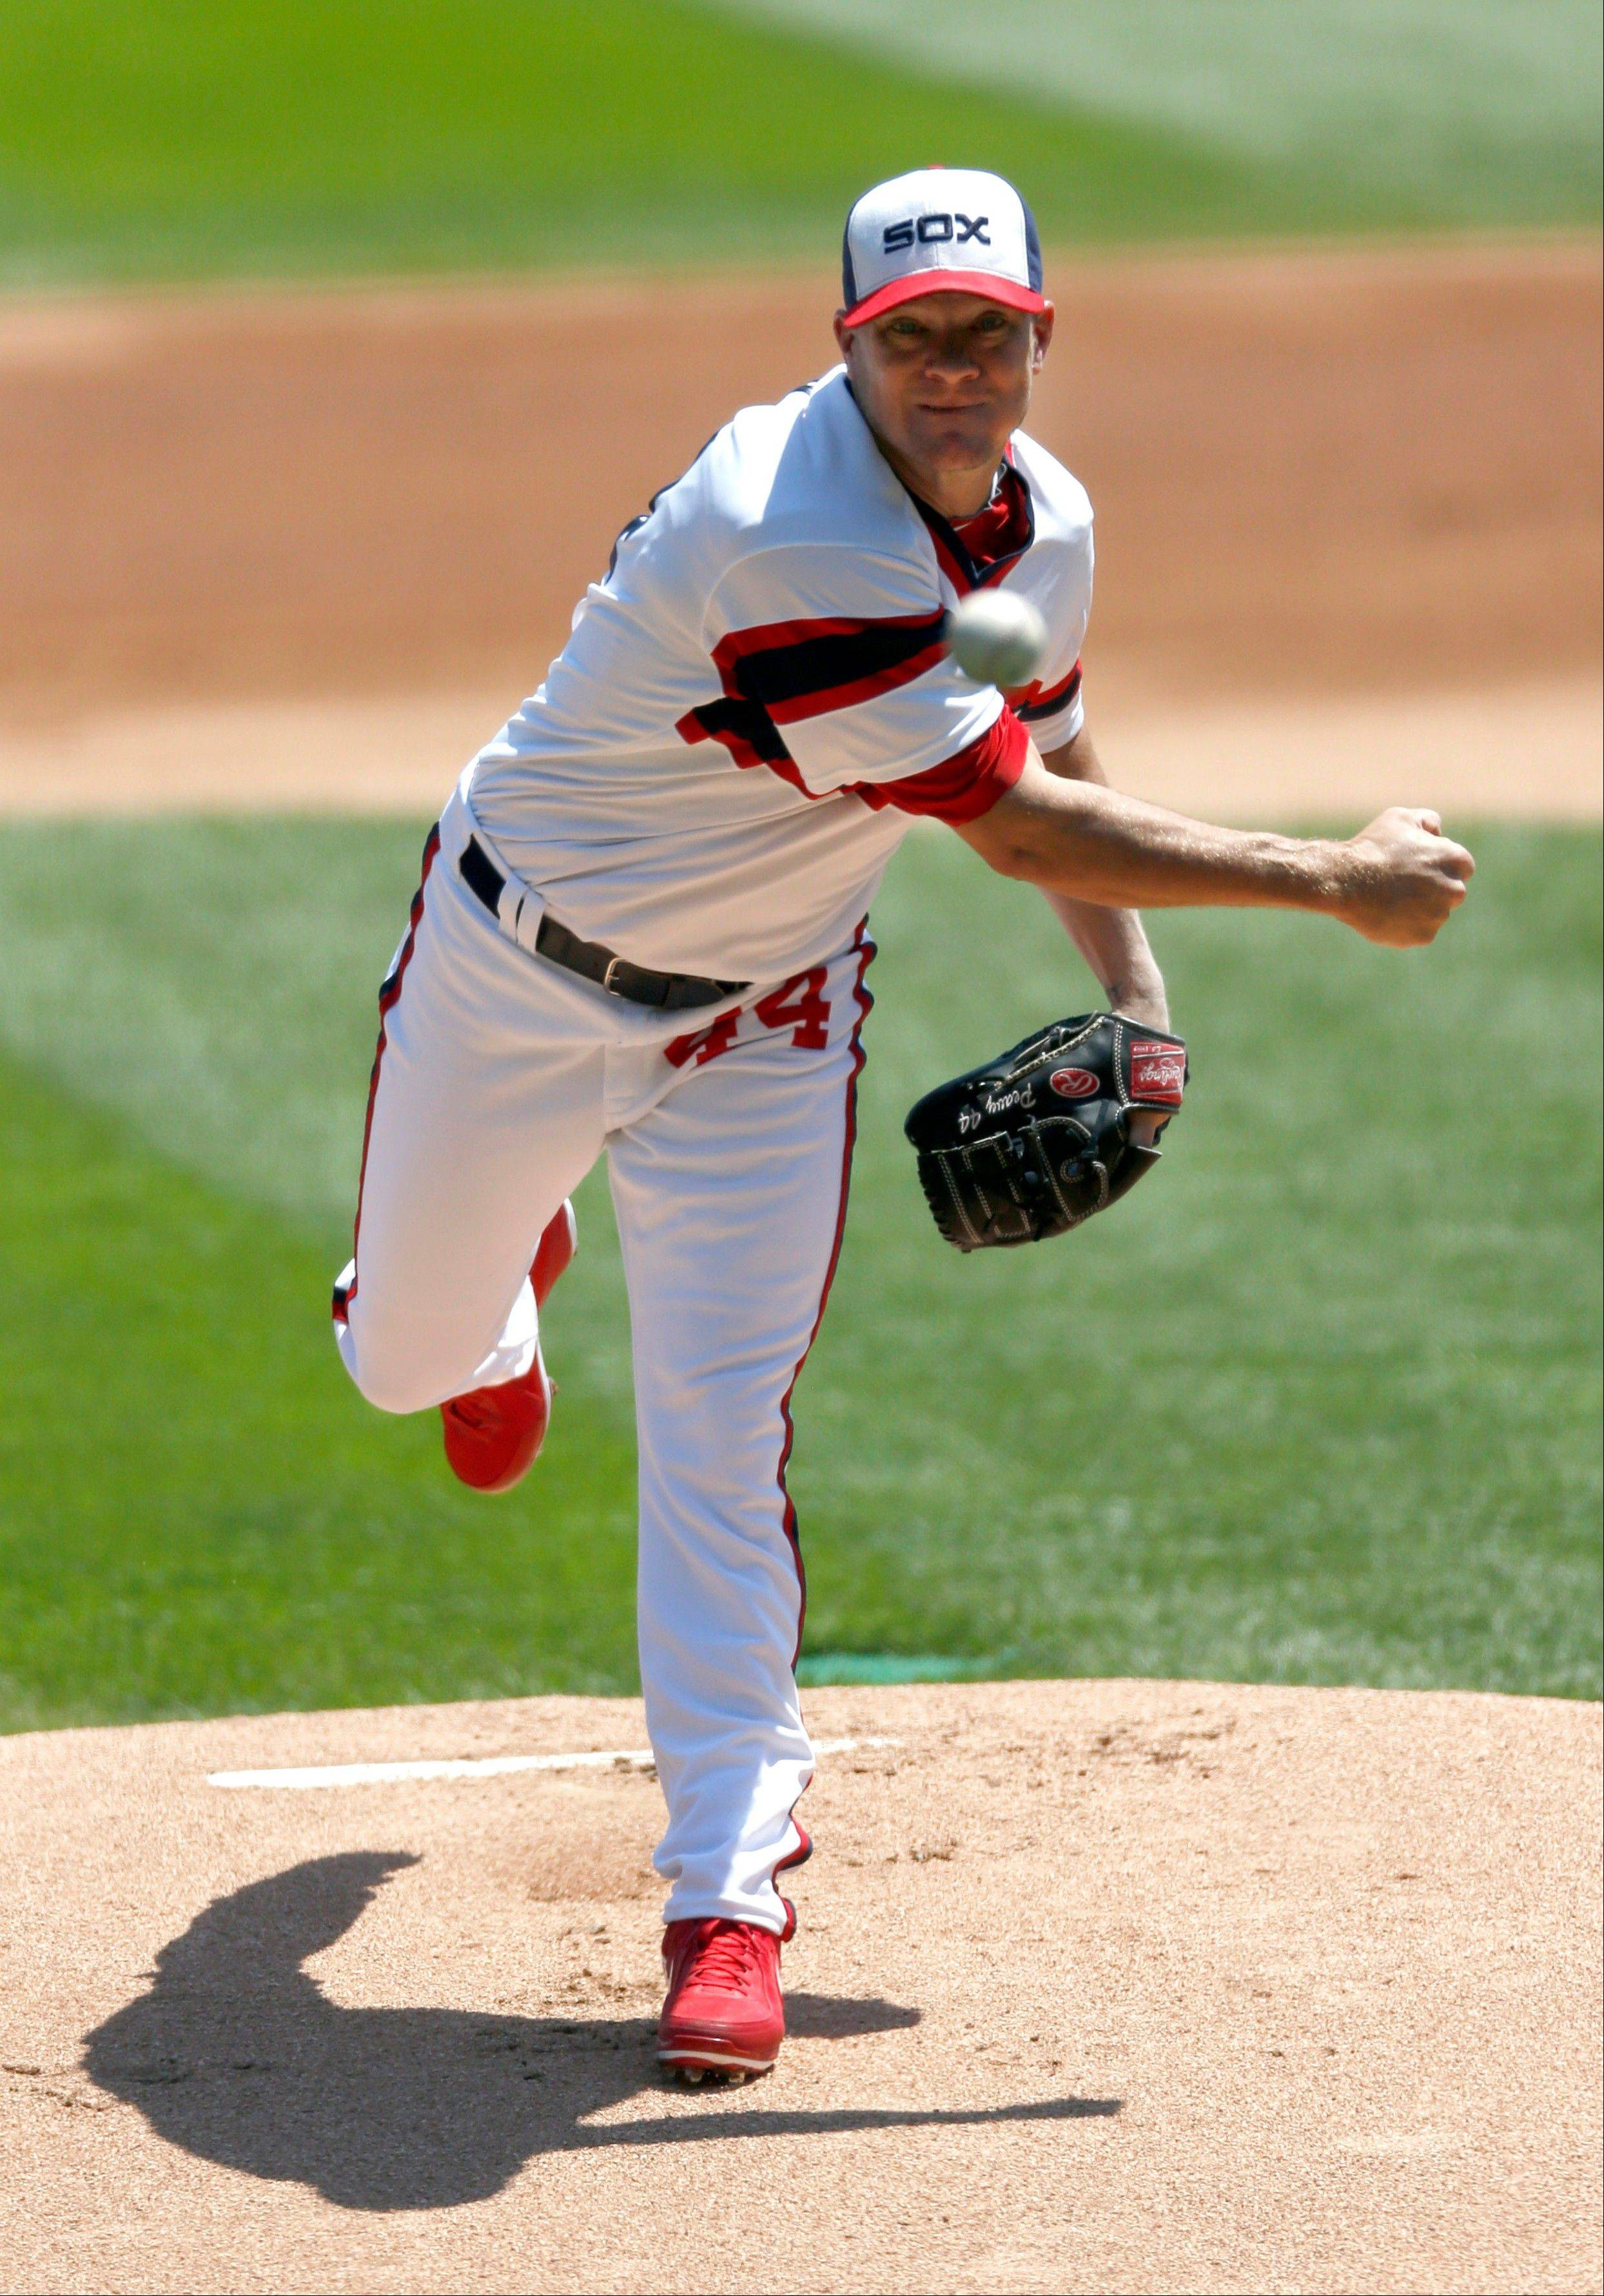 Jake Peavy threw 7 innings against Detroit, allowing 4 runs on 4 hits. He improved to 8-4 on the season.